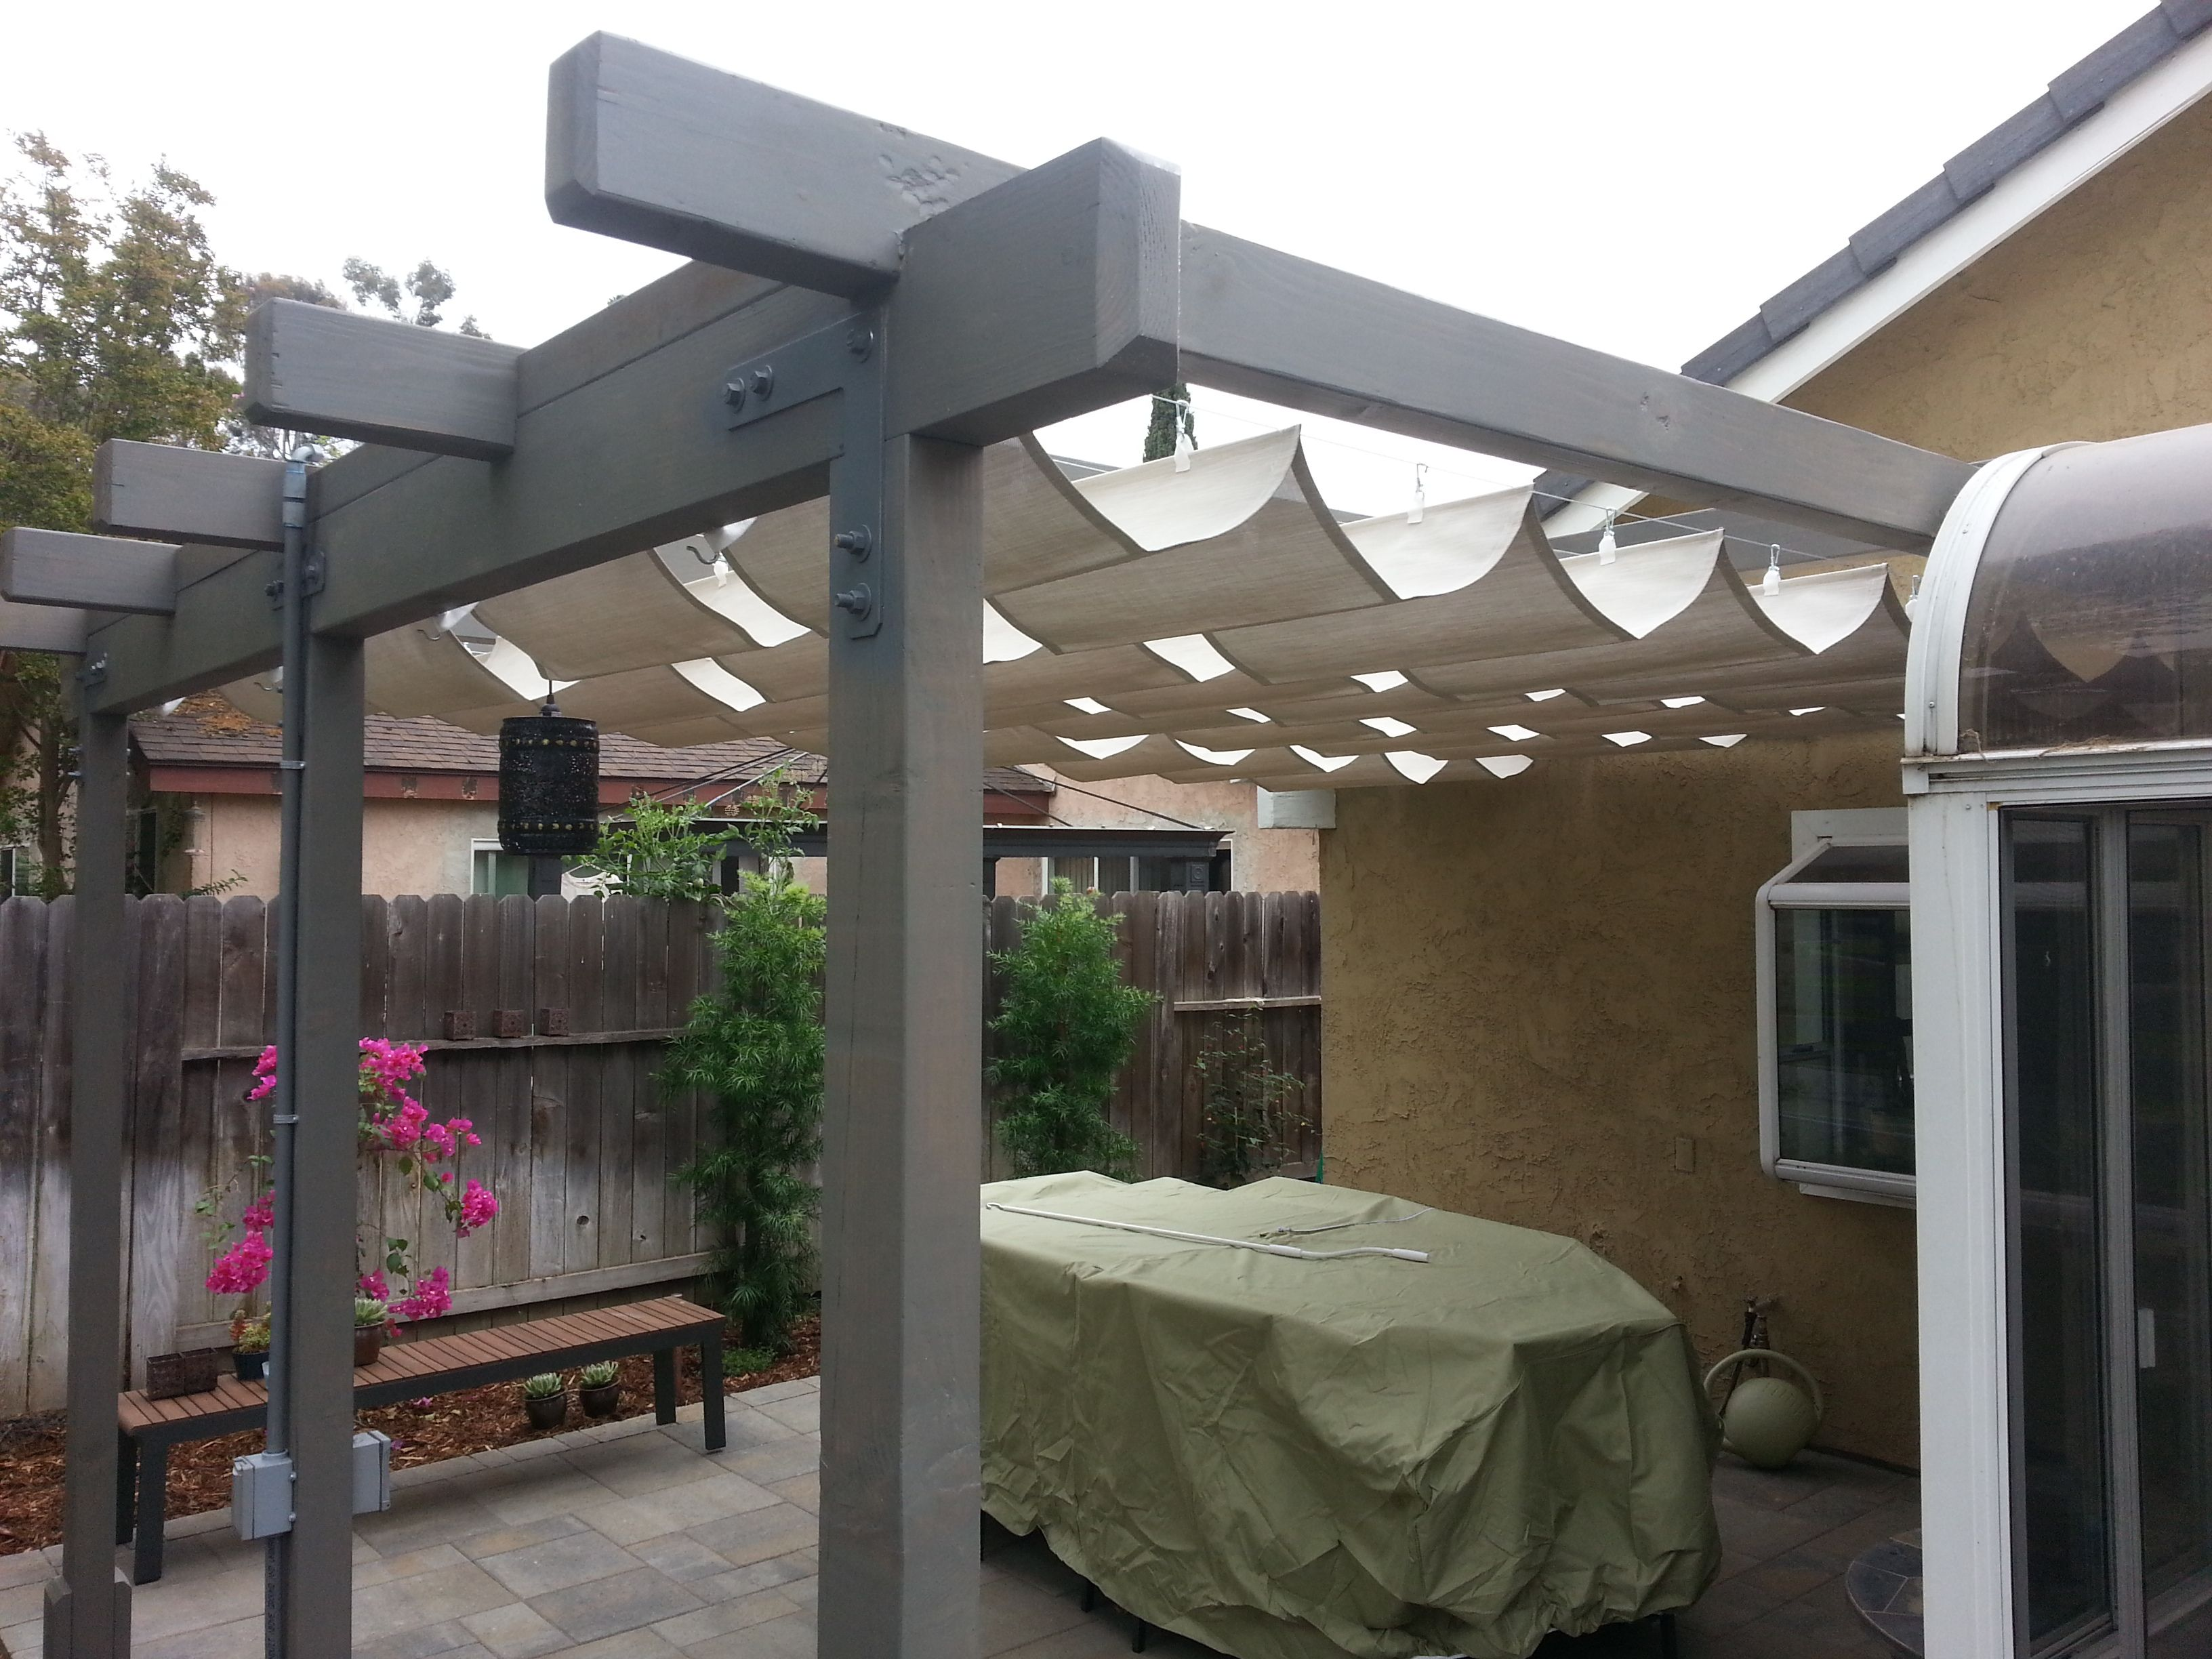 2 4 Picture From Our Team King Awnings Install With Images Shade Screen Installation Outdoor Decor